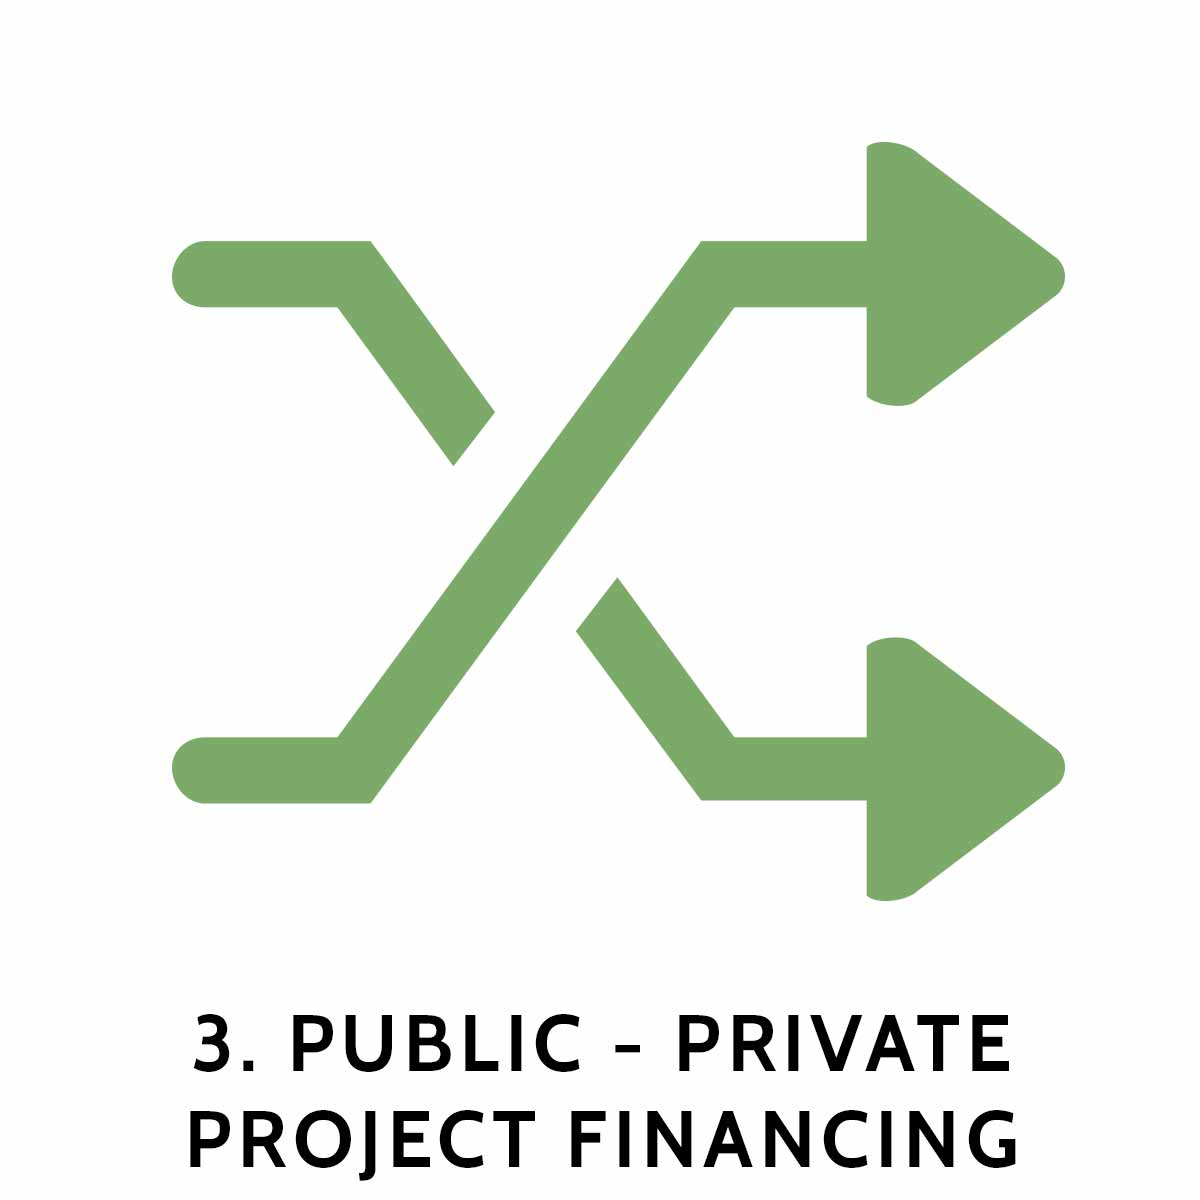 Infrastructure Energy - A new Approach That Enables Grid Modernization - 3. Public - Private Project Financing